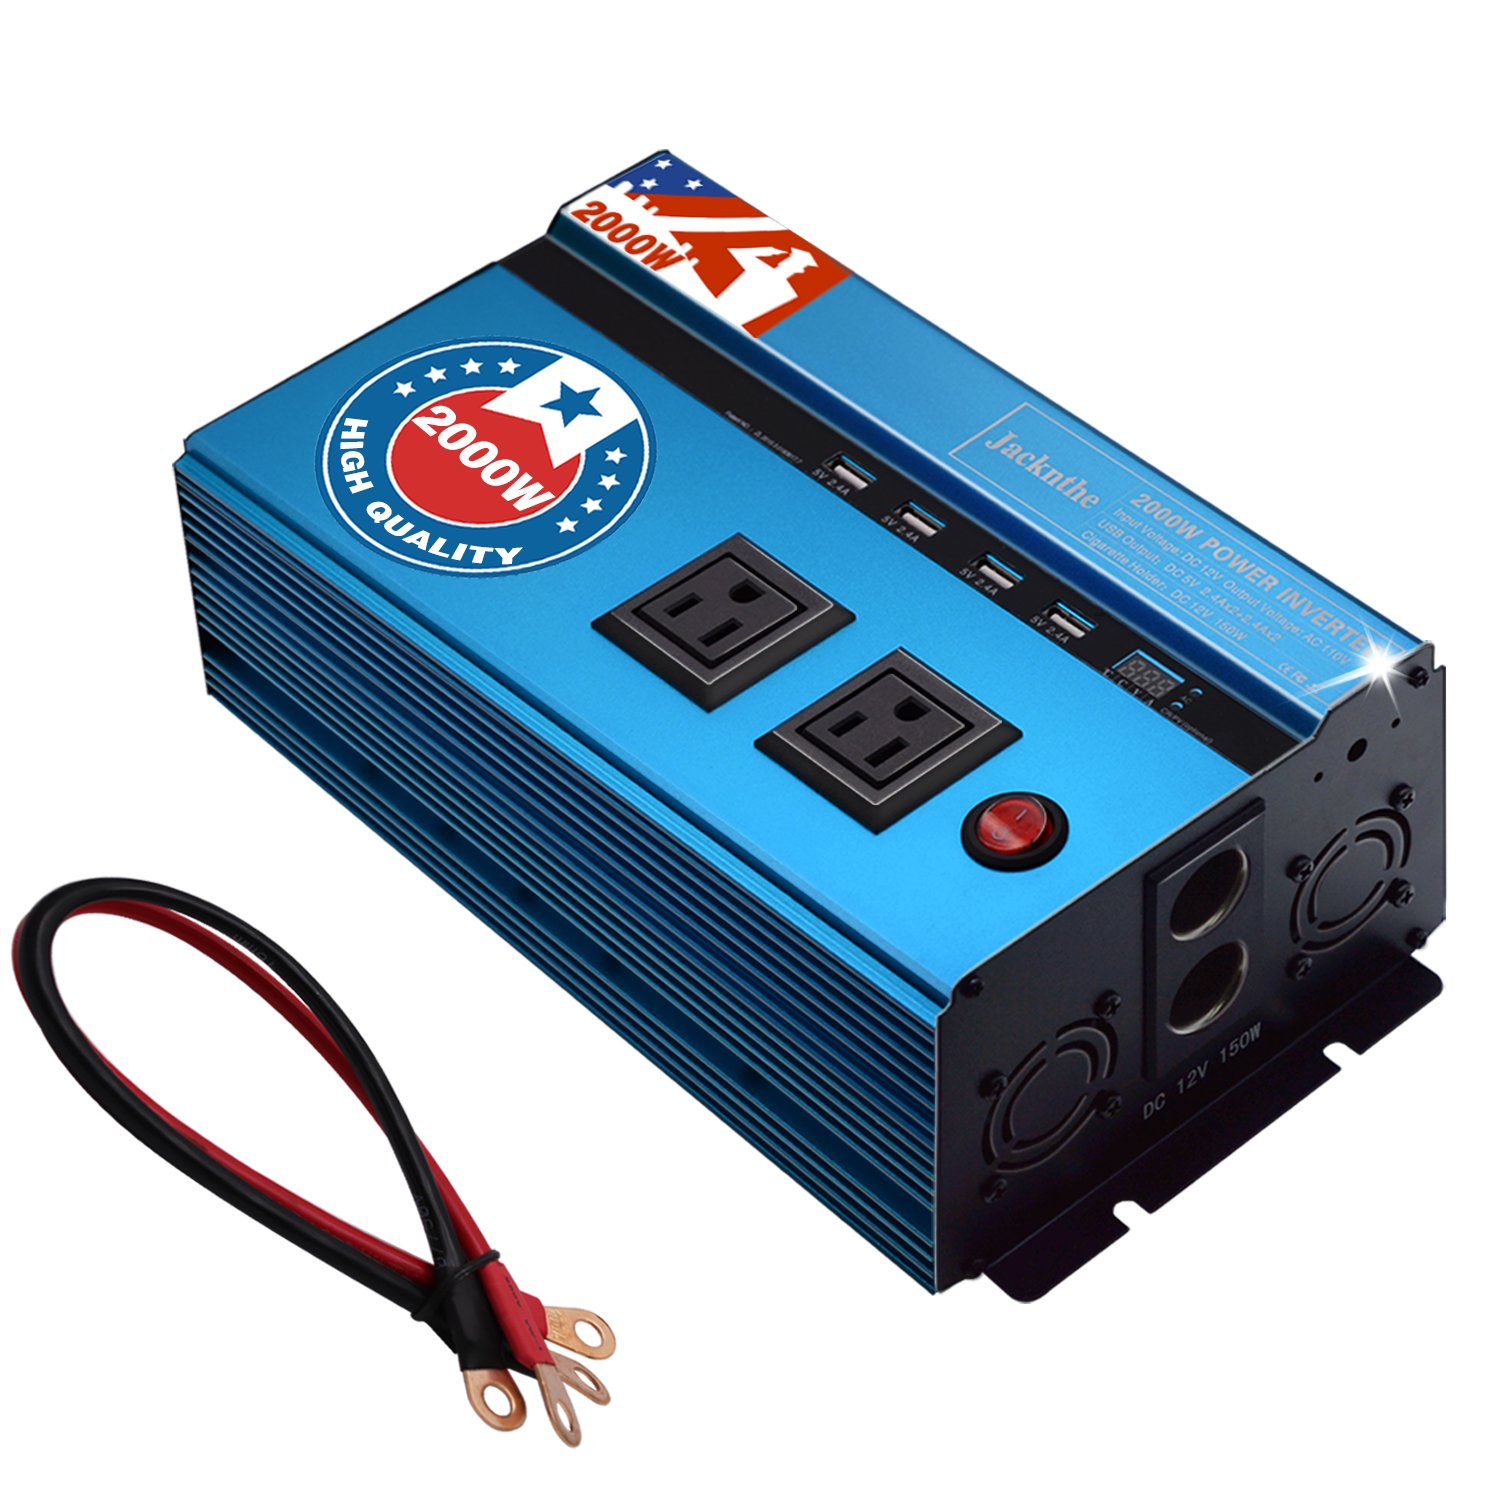 Jacknthe 2000W Power Inverter 12V DC to 110V AC Car Converter with 2 AC Outlets 4 USB Ports Vehicle Inverter with Dual Cigarette Lighter Socket and Digital Display by Jacknthe